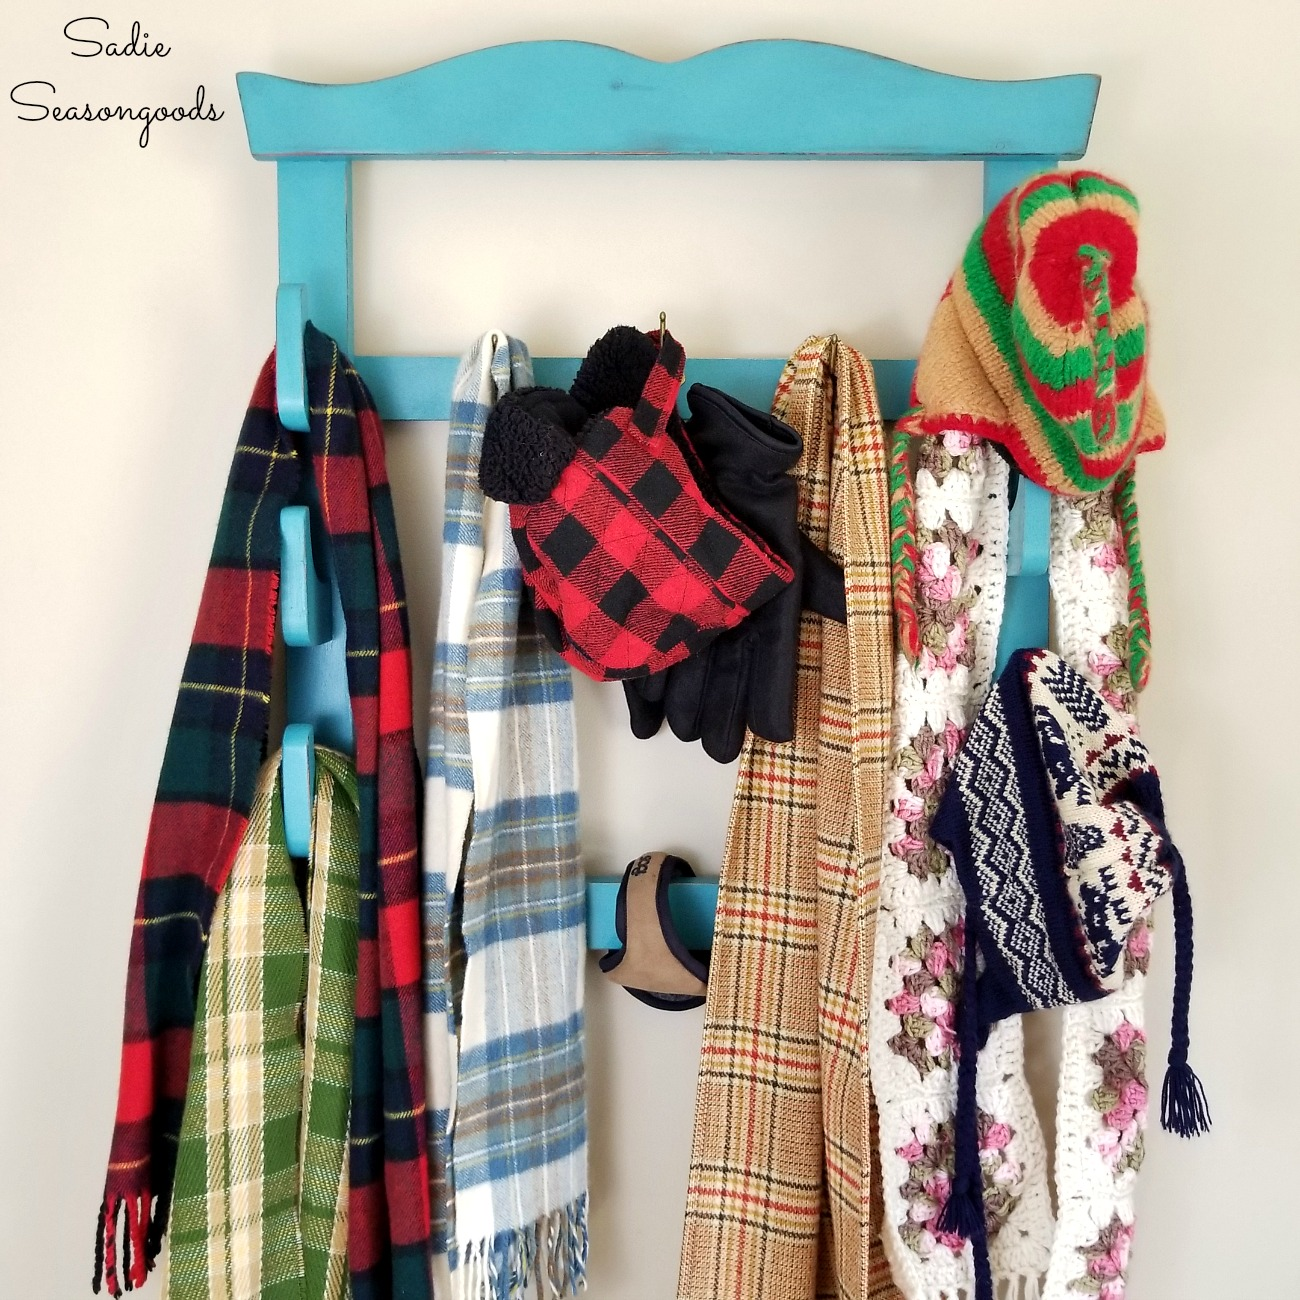 How to make a wall mounted coat rack or coat tree for entryway storage from a wall gun rack by Sadie Seasongoods